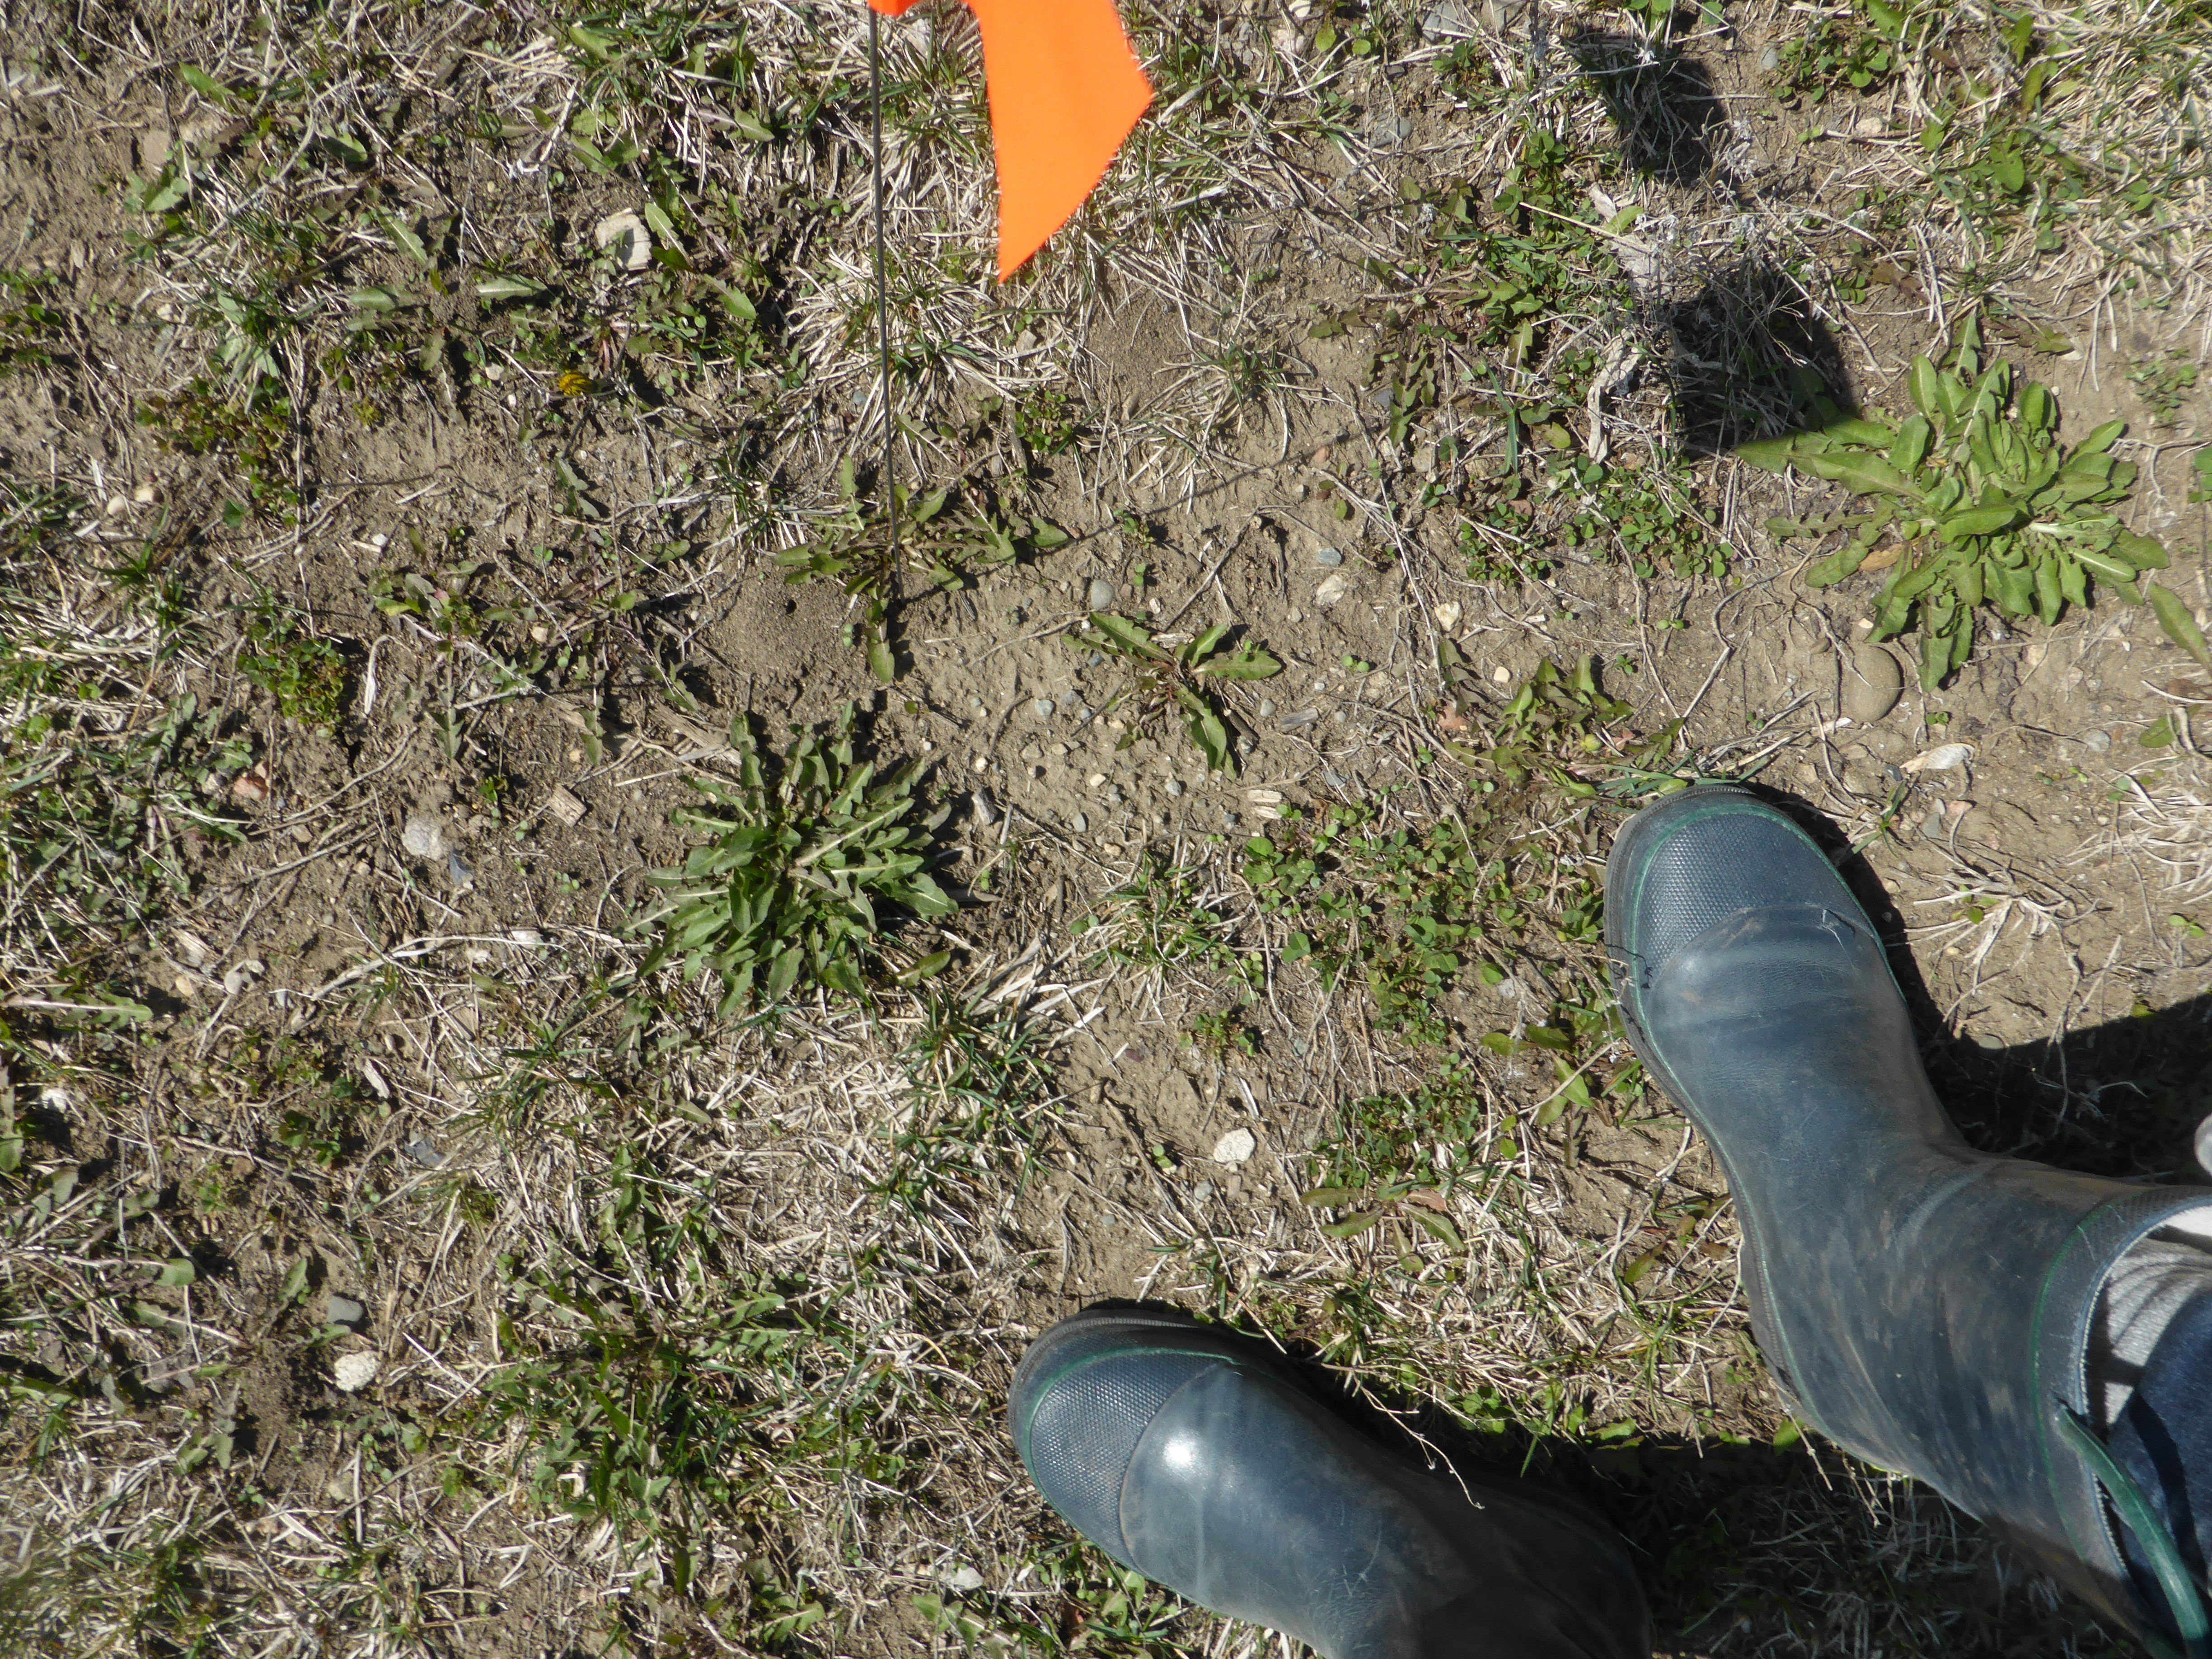 This photo was taken with the camera aiming towards the ground. In the lower right-hand corner of the frame are feet in calf-high rubber boots. In the upper portion of the frame, there are holes in the ground, among the short-cropped grass. Near the holes are small orange flags on small wire posts.